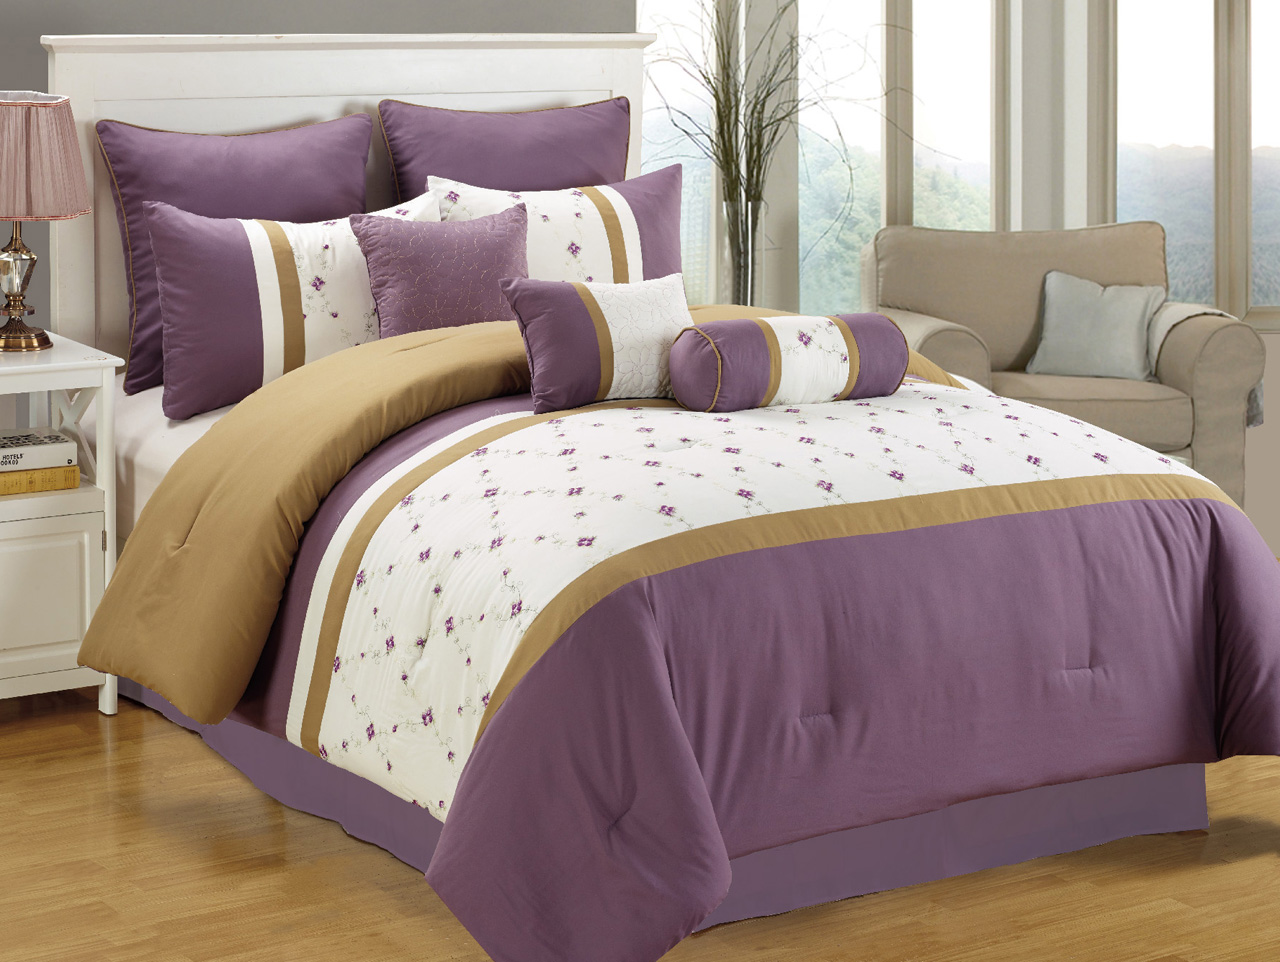 7 Piece King Purple/White/Taupe Embroidered Comforter Set